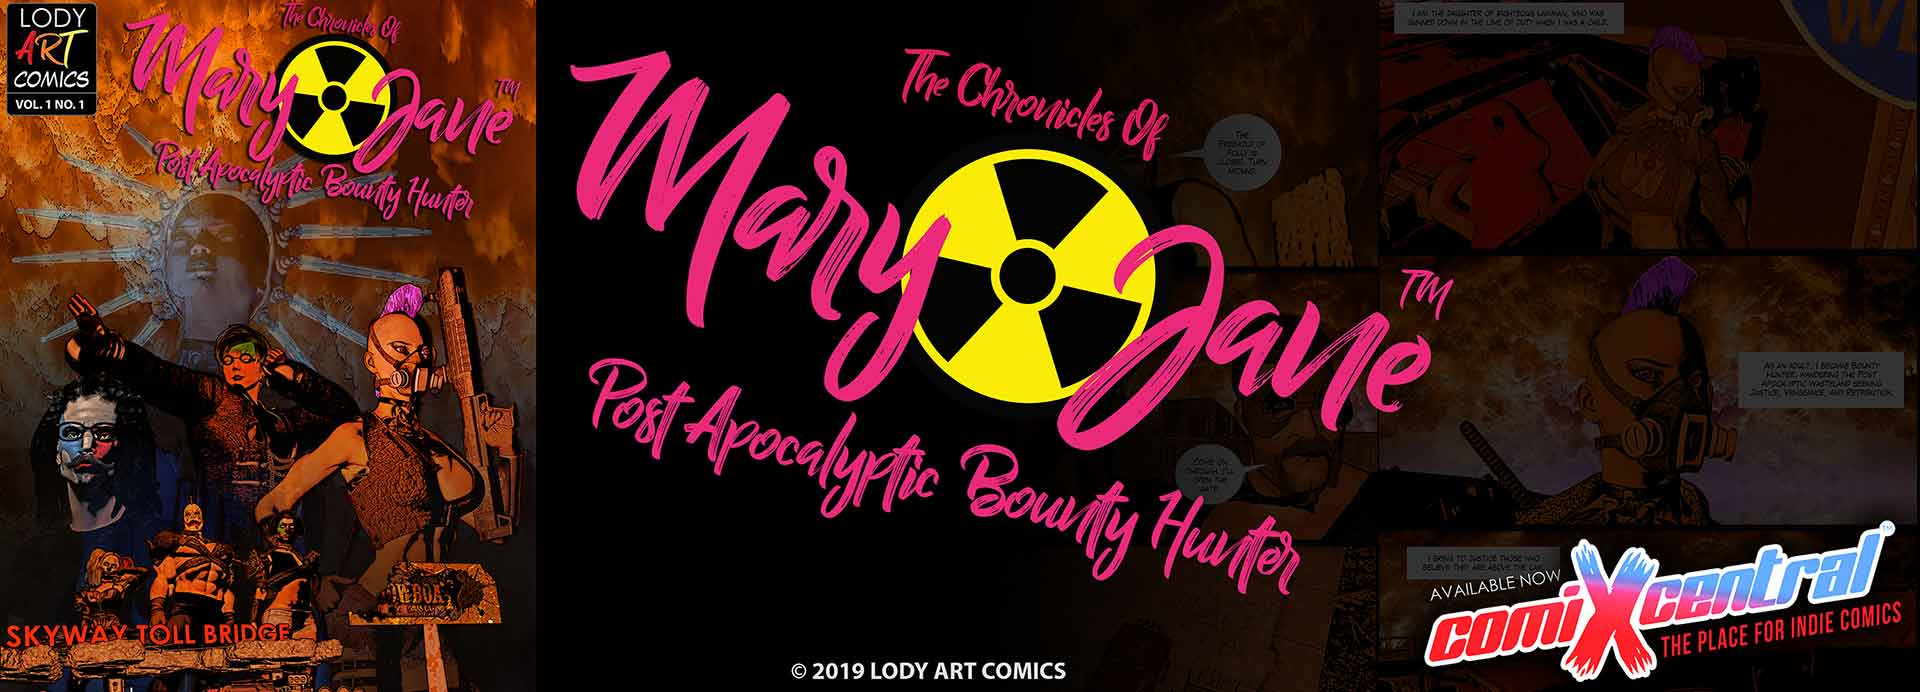 Mary Jane: Post Apocalyptic Bounty Hunter